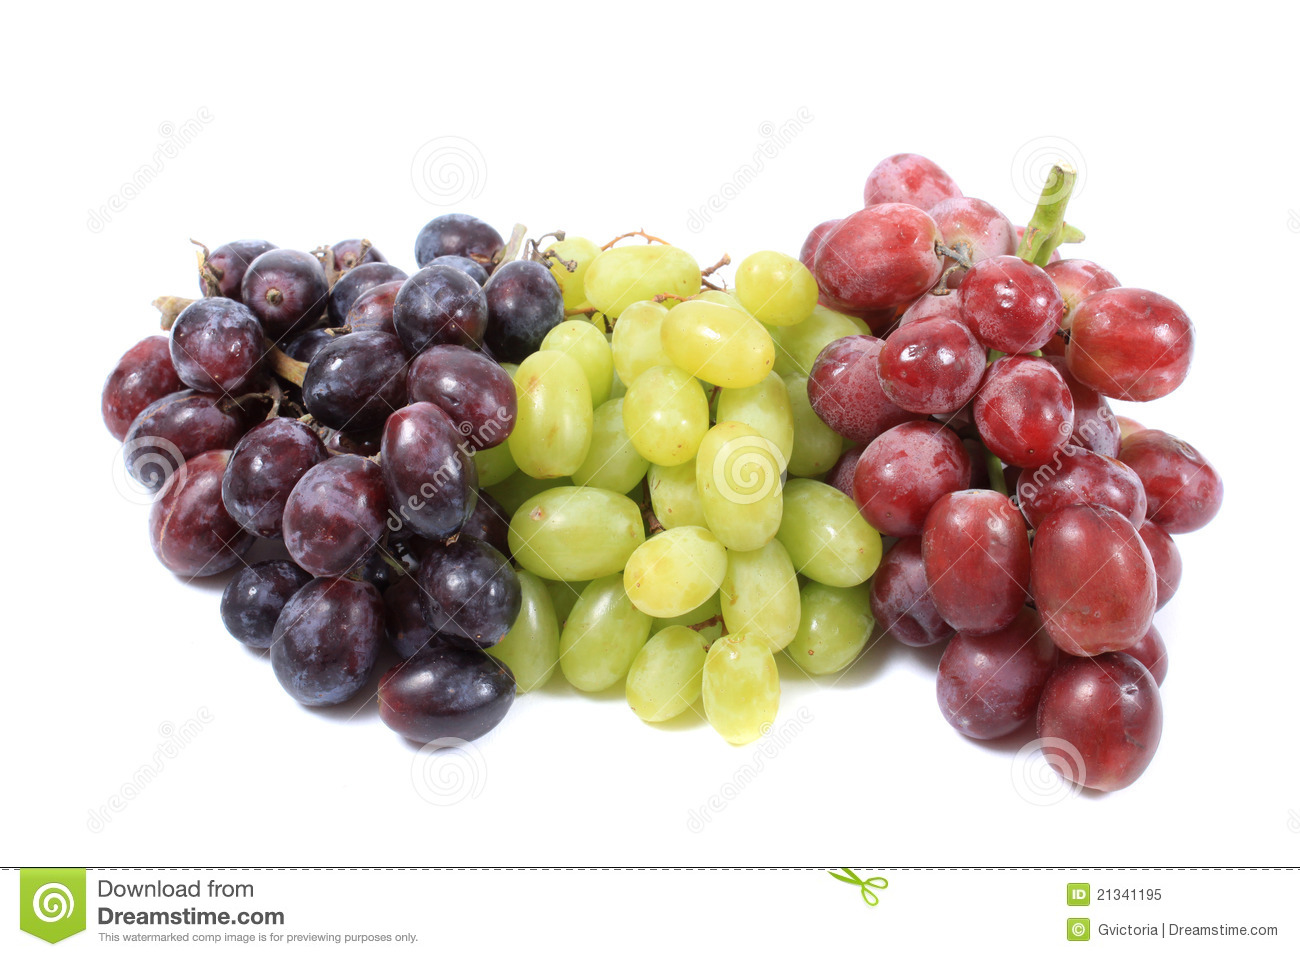 appears as grape Grapes are the fruit that grow on a woody grape vine it appears that wild frogs are becoming increasingly resistant to the chytrid fungal disease that has.